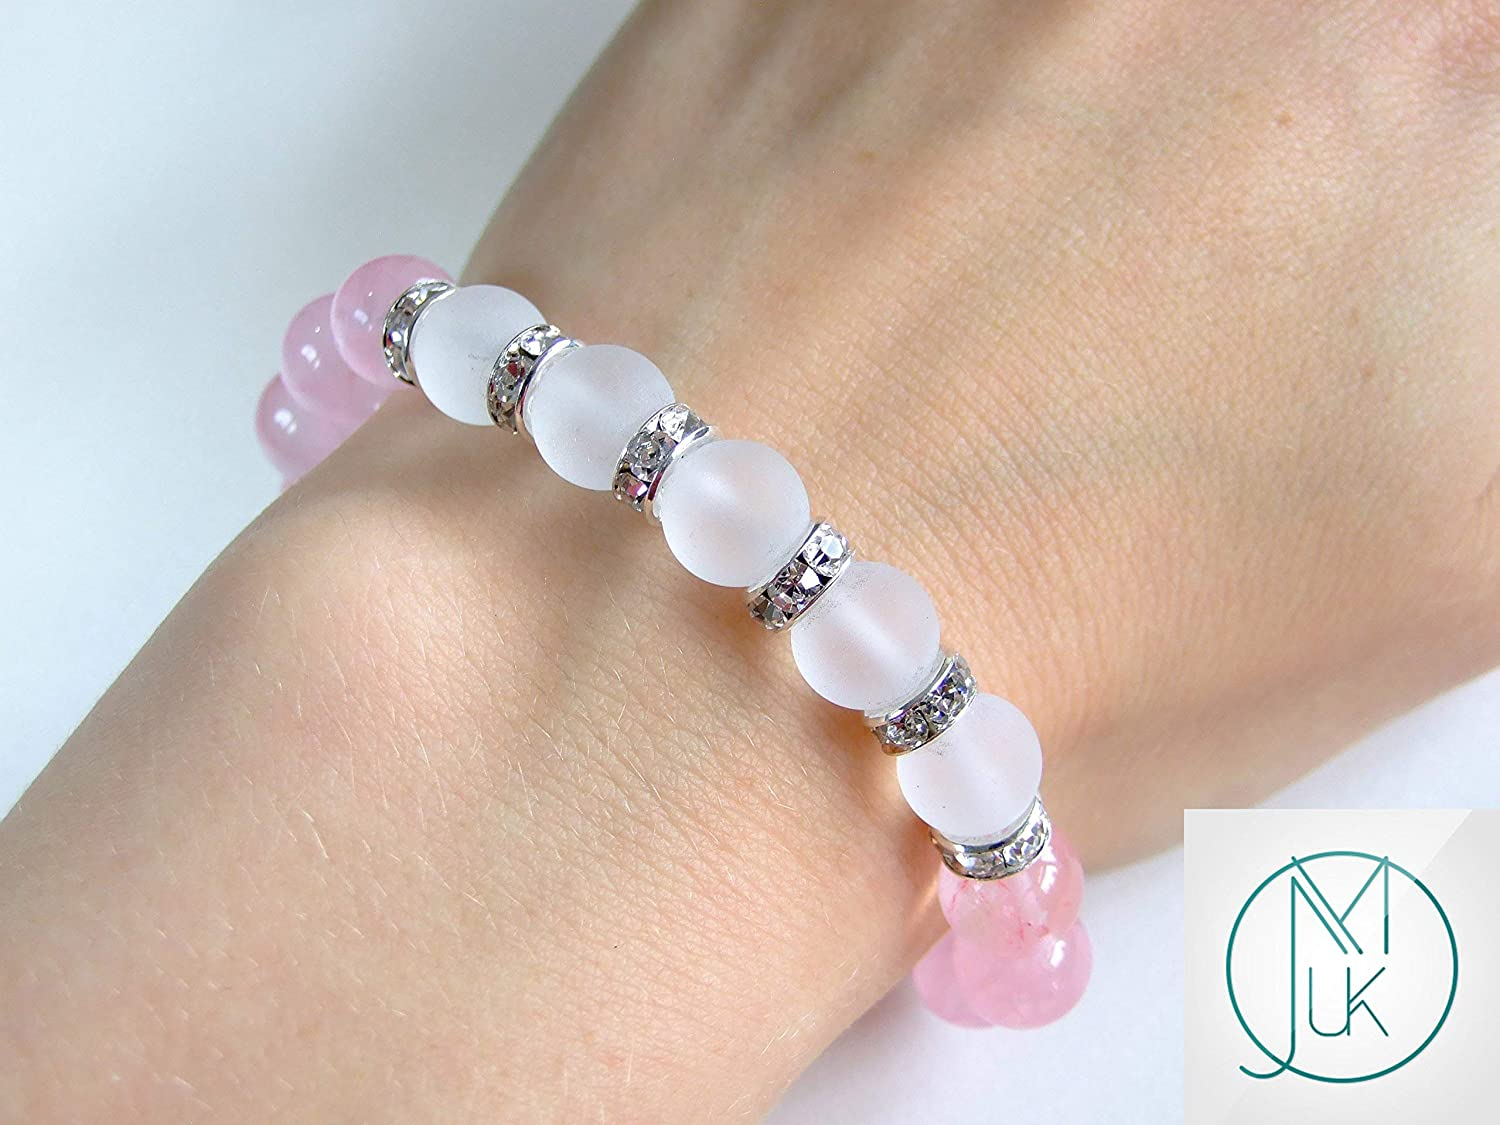 Rose Quartz Frosted Crystal 10mm Natural Gemstone Bracelet Beaded 6-9 Elasticated Healing Stone Chakra Reiki With Pouch FREE UK SHIPPING